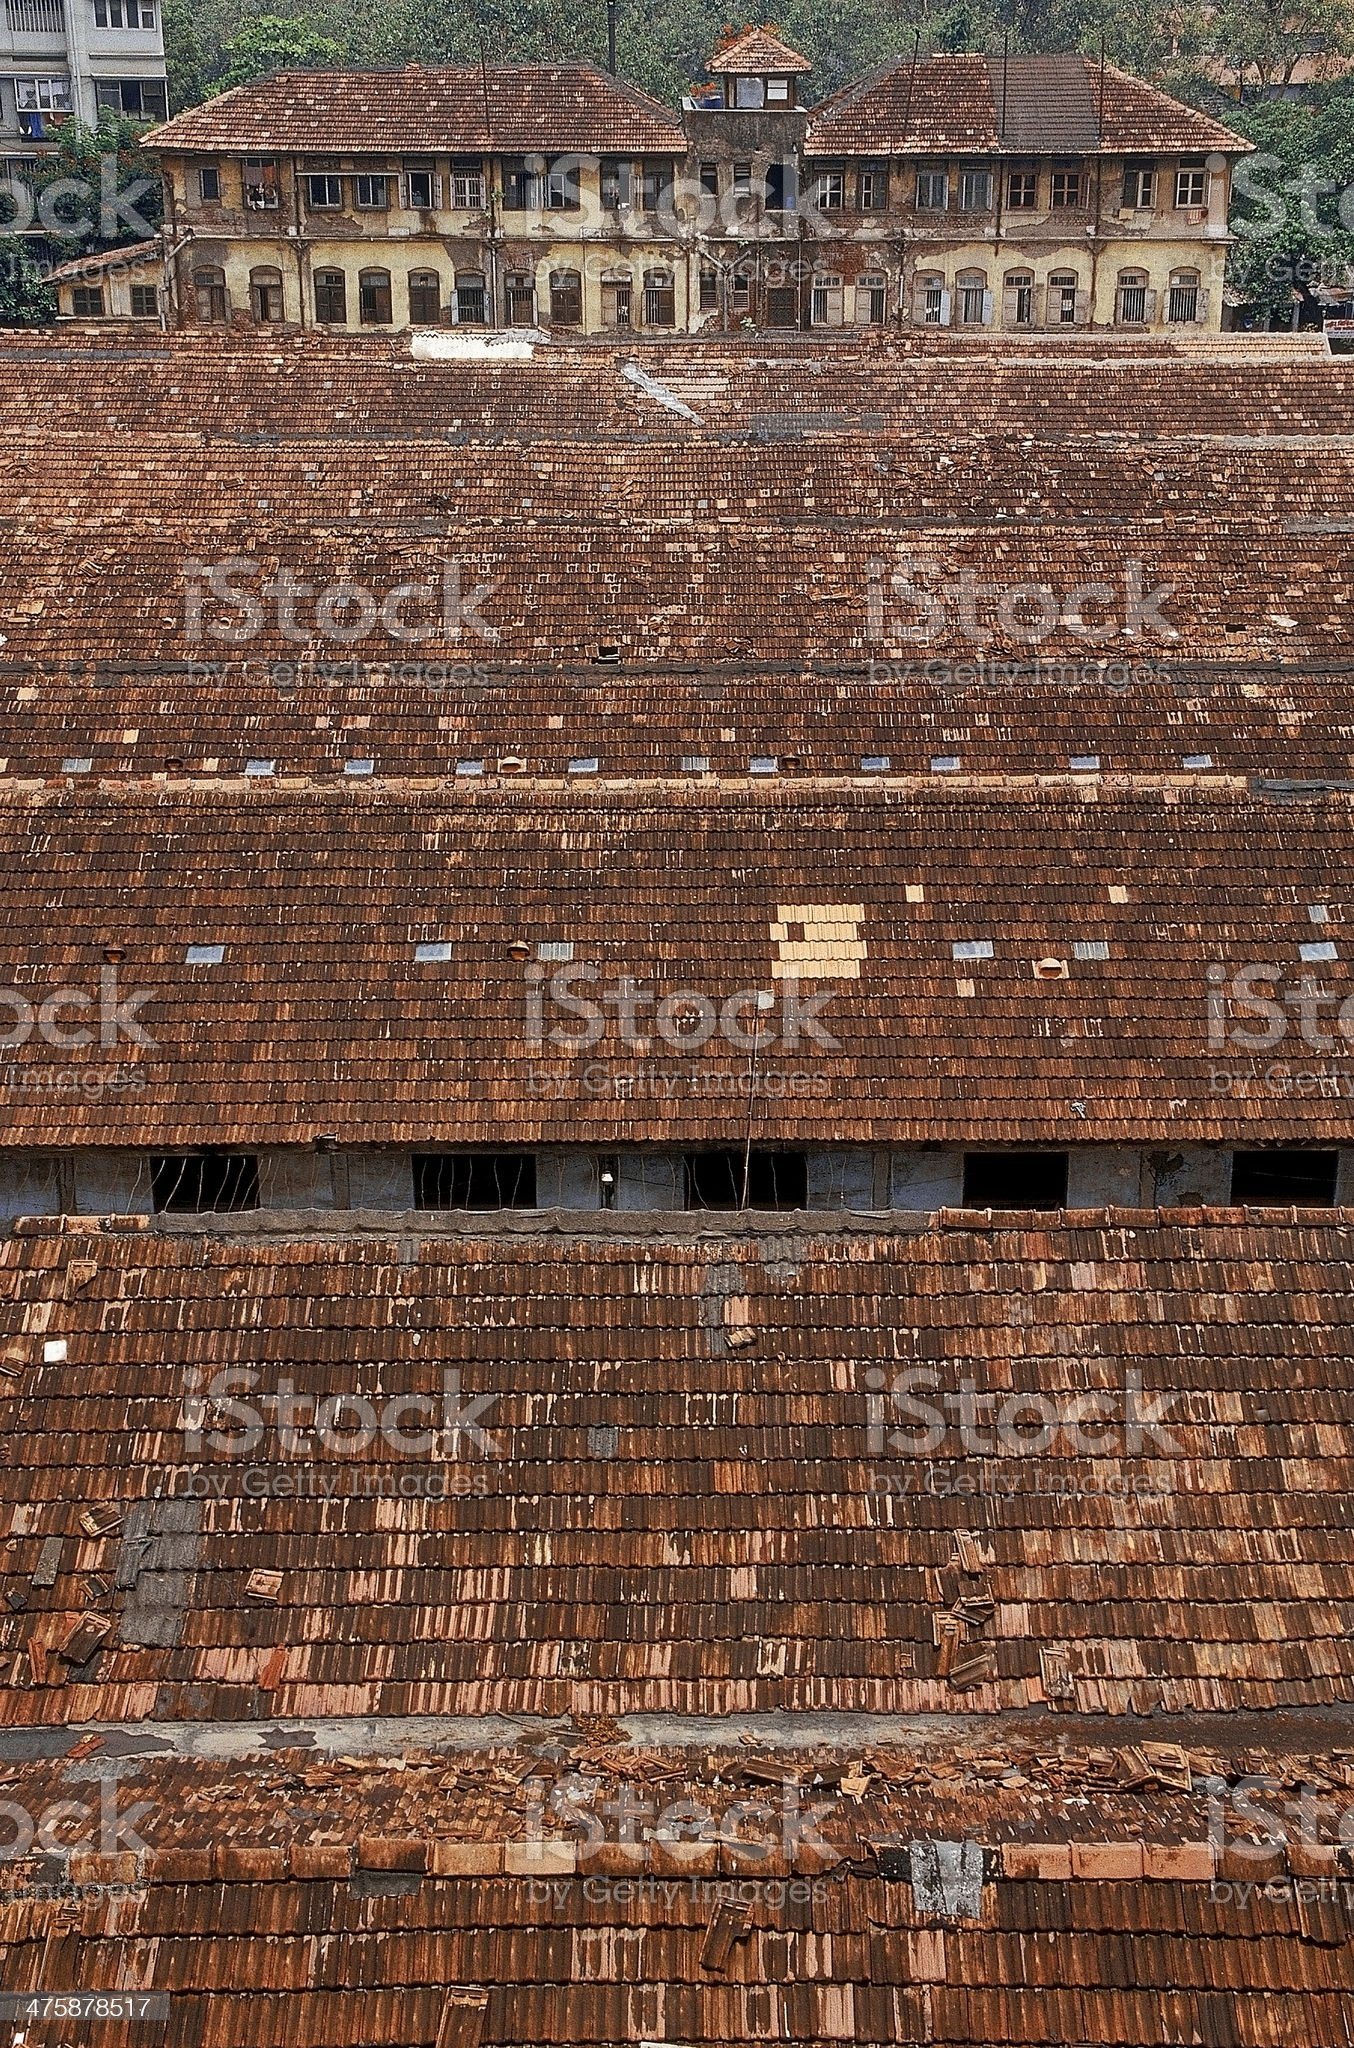 roofs for Chowls made in mangalori tiles royalty-free stock photo